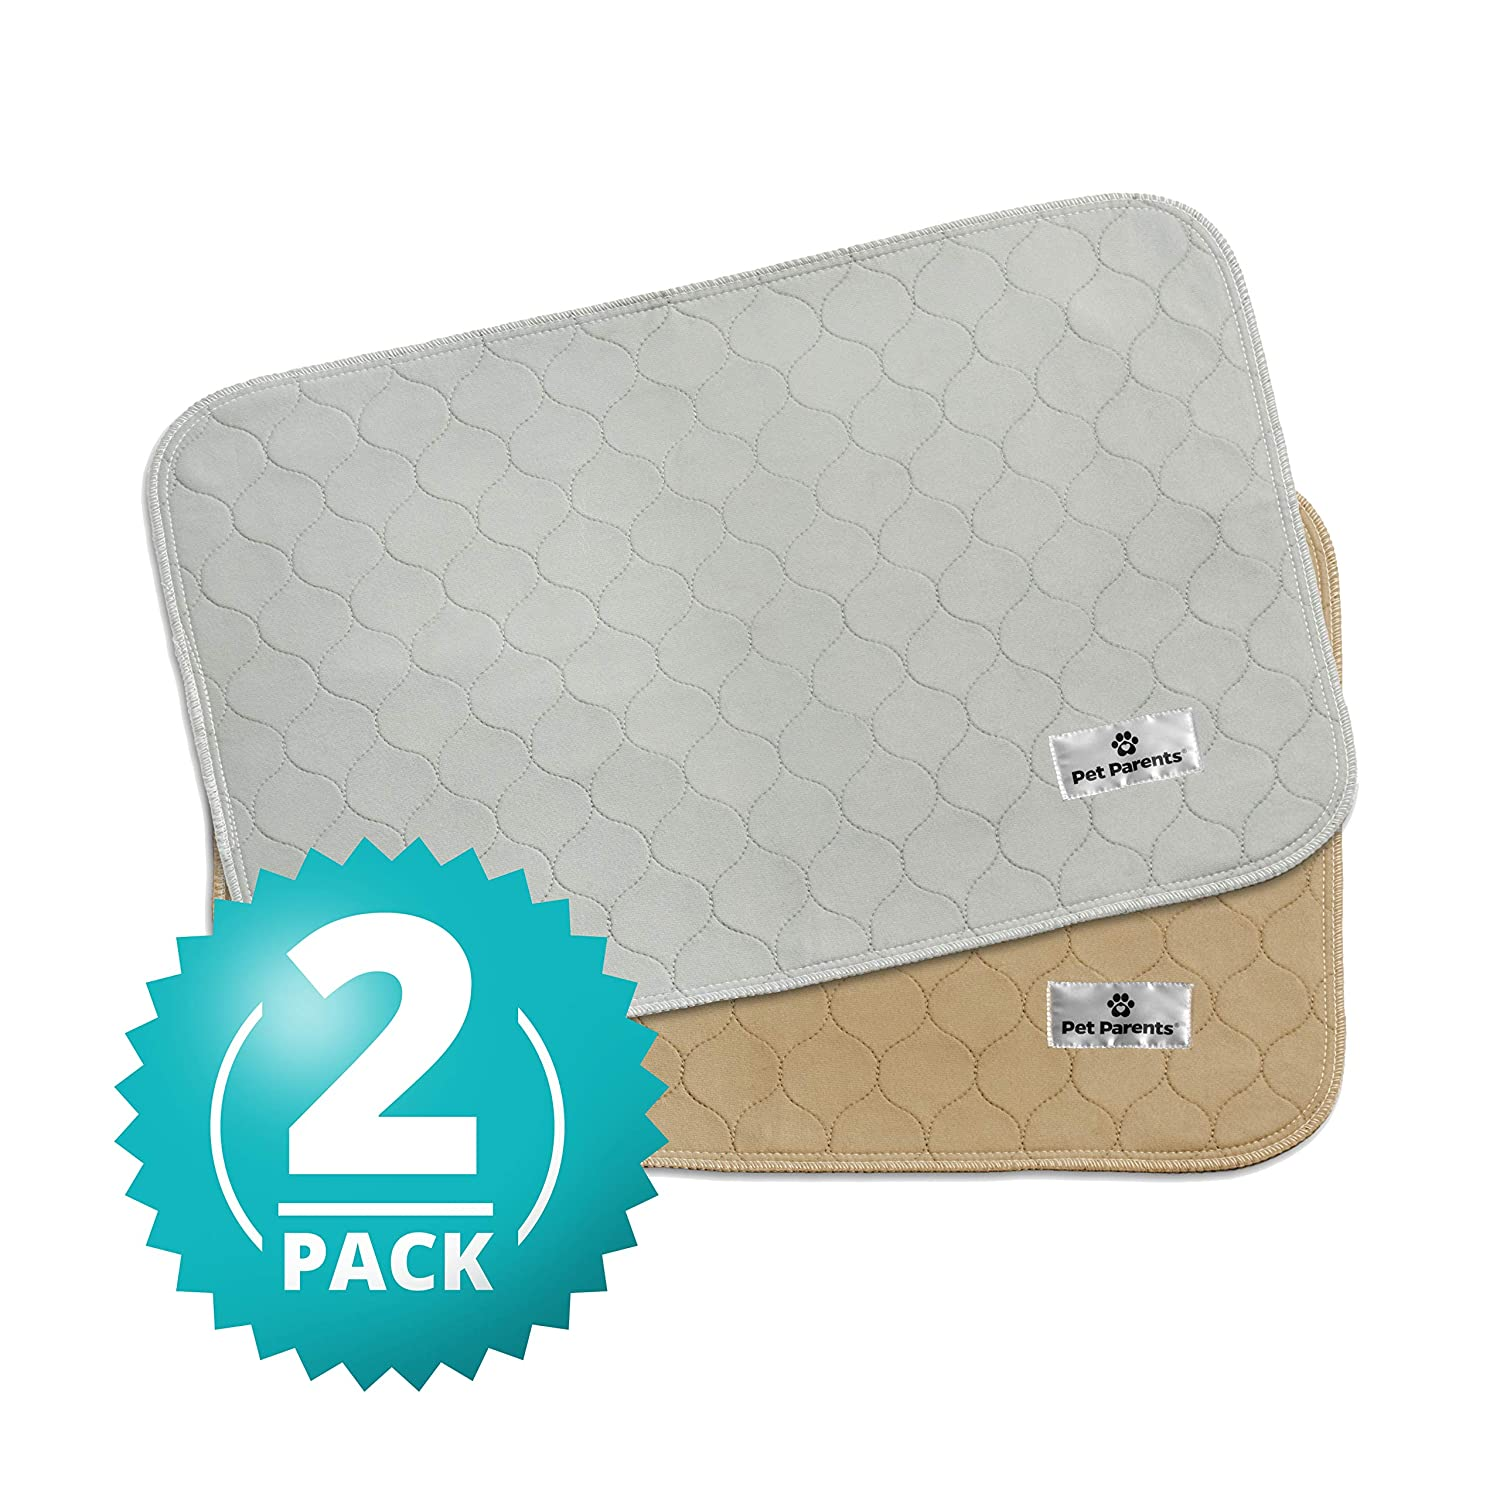 Natural 18x24 (2pack) Natural 18x24 (2pack) Pet Parents Washable Dog Pee Pads (2pack) of (18x24) Premium Pee Pads for Dogs, Waterproof Whelping Pads, Reusable Dog Training Pads, Quality Travel Pet Pee Pads. Modern Puppy Pads  (1 Tan & 1 Grey)